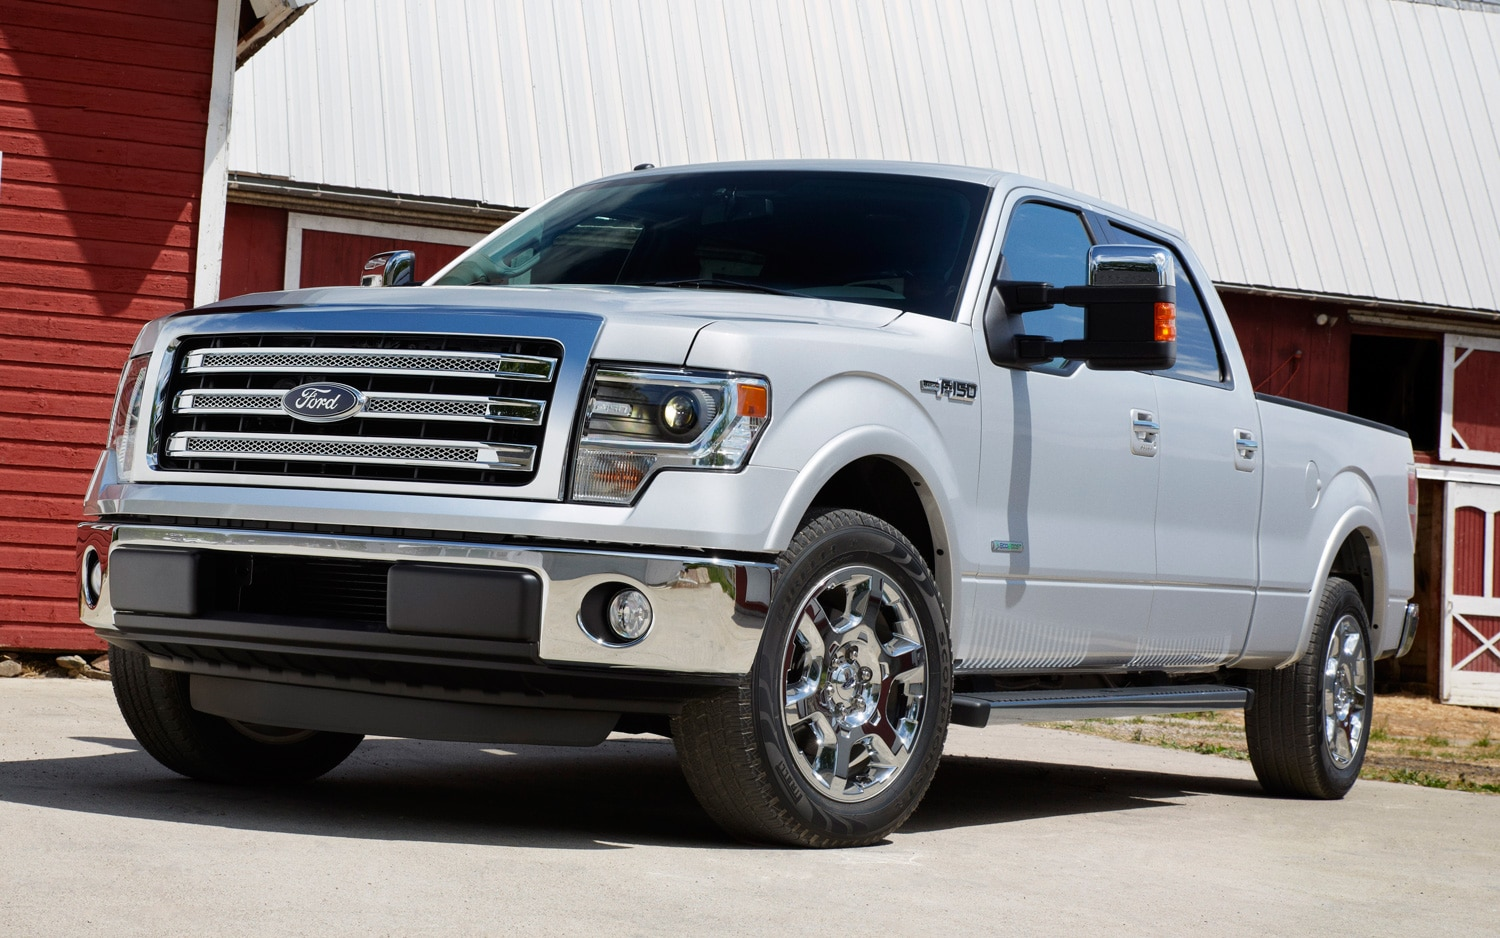 2013 ford f-150 limited, svt raptor pricing announced